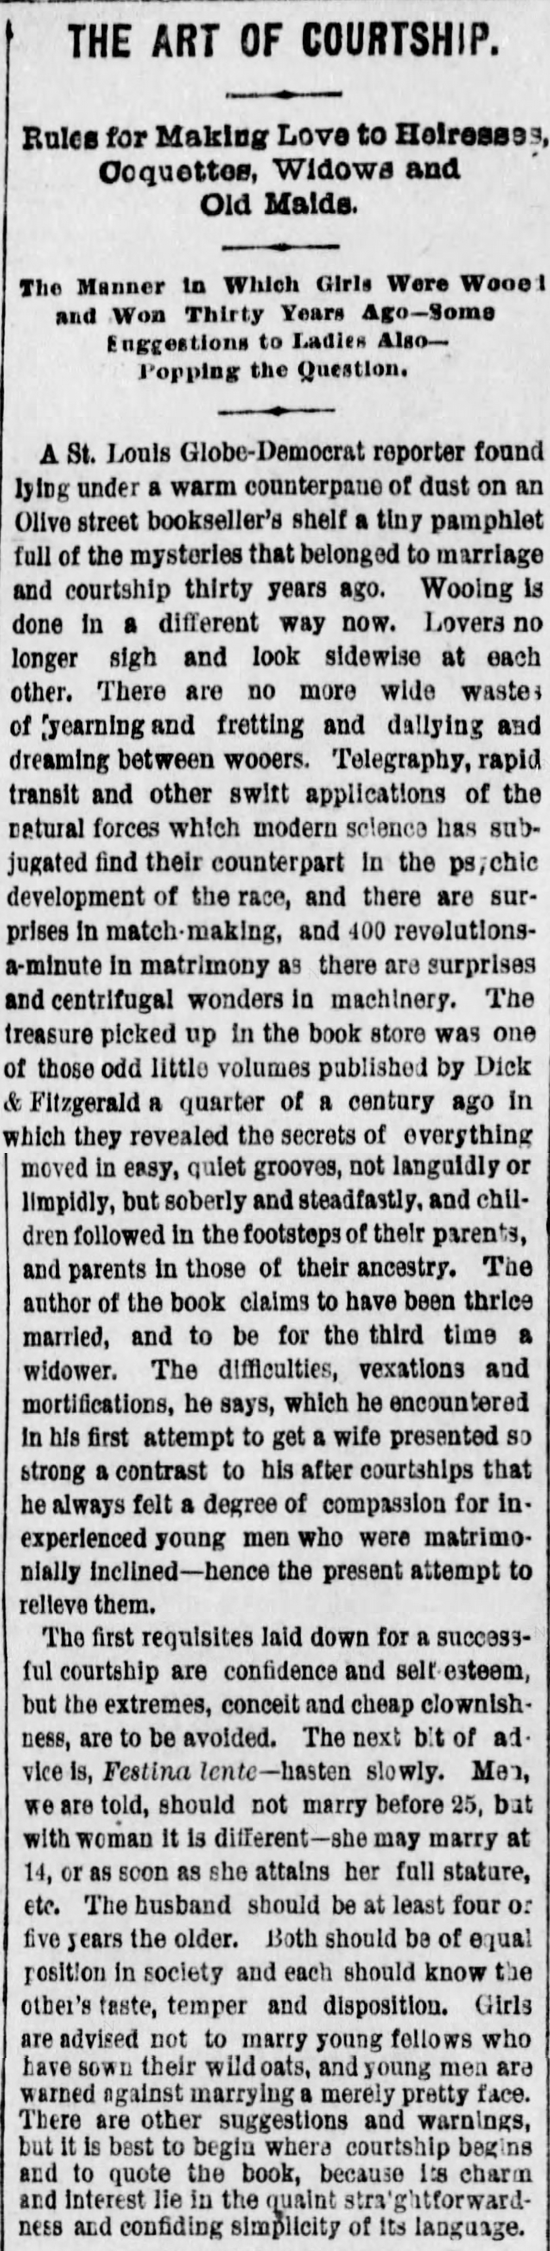 Kristin Holt | The Art of Courtship, Introduction, from The Des Moines Register of Des Moines, IA on February 20, 1887